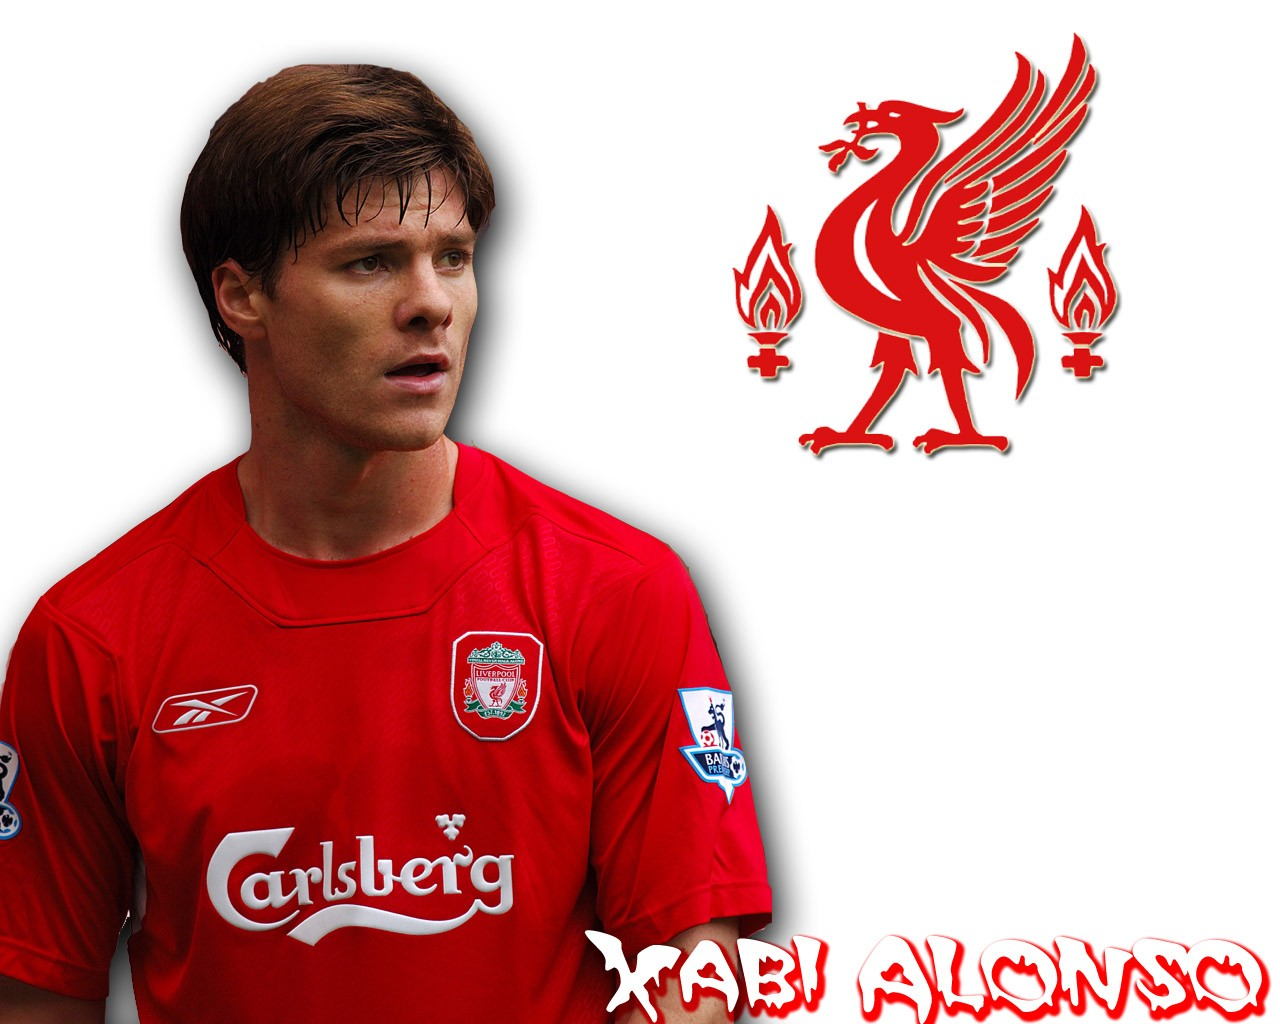 1280x1024 - Xabi Alonso Wallpapers 17